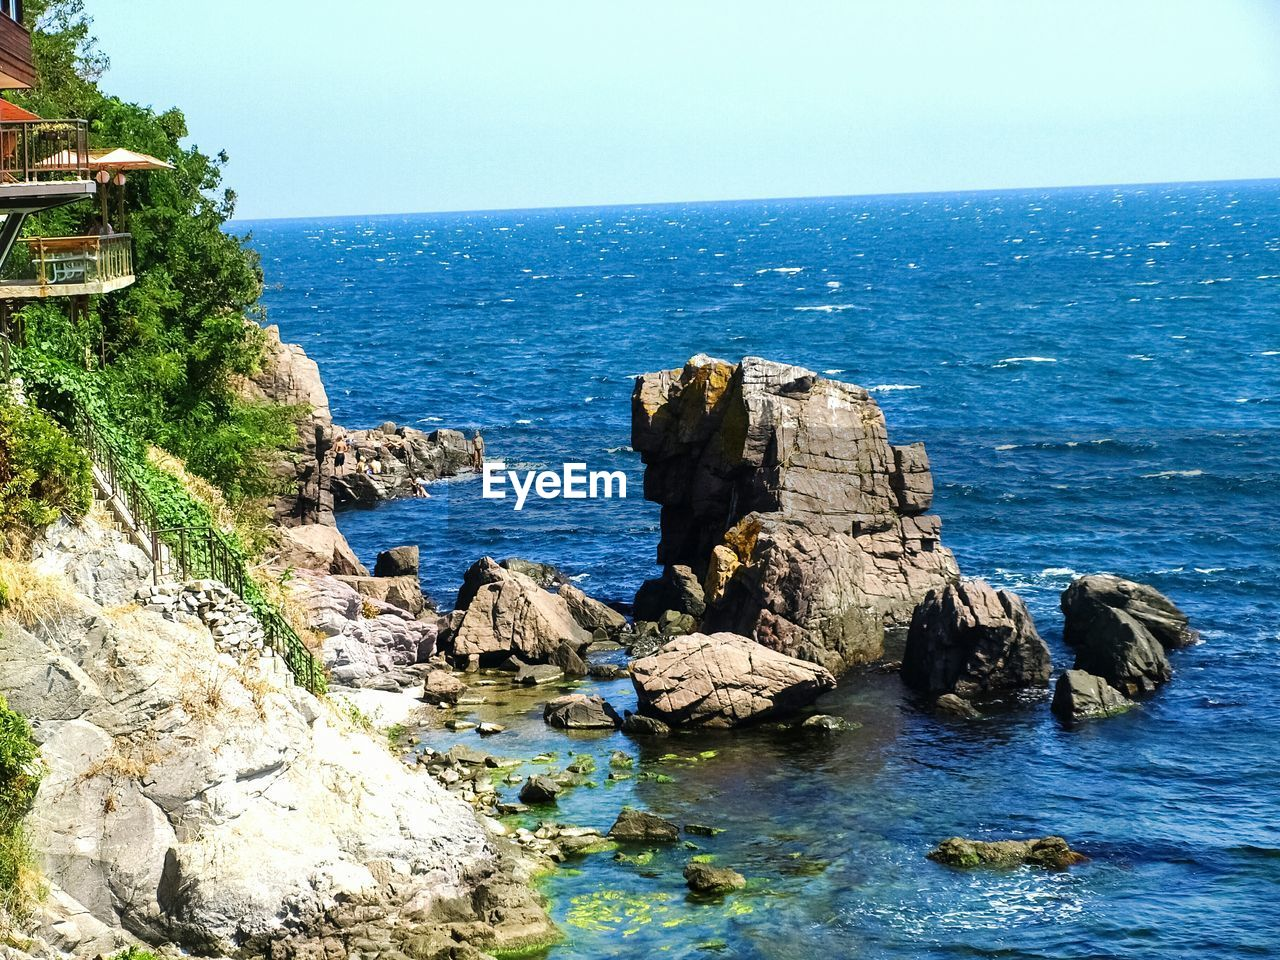 sea, rock - object, water, scenics, rock formation, nature, tranquil scene, horizon over water, beauty in nature, tranquility, no people, clear sky, blue, day, outdoors, sky, cliff